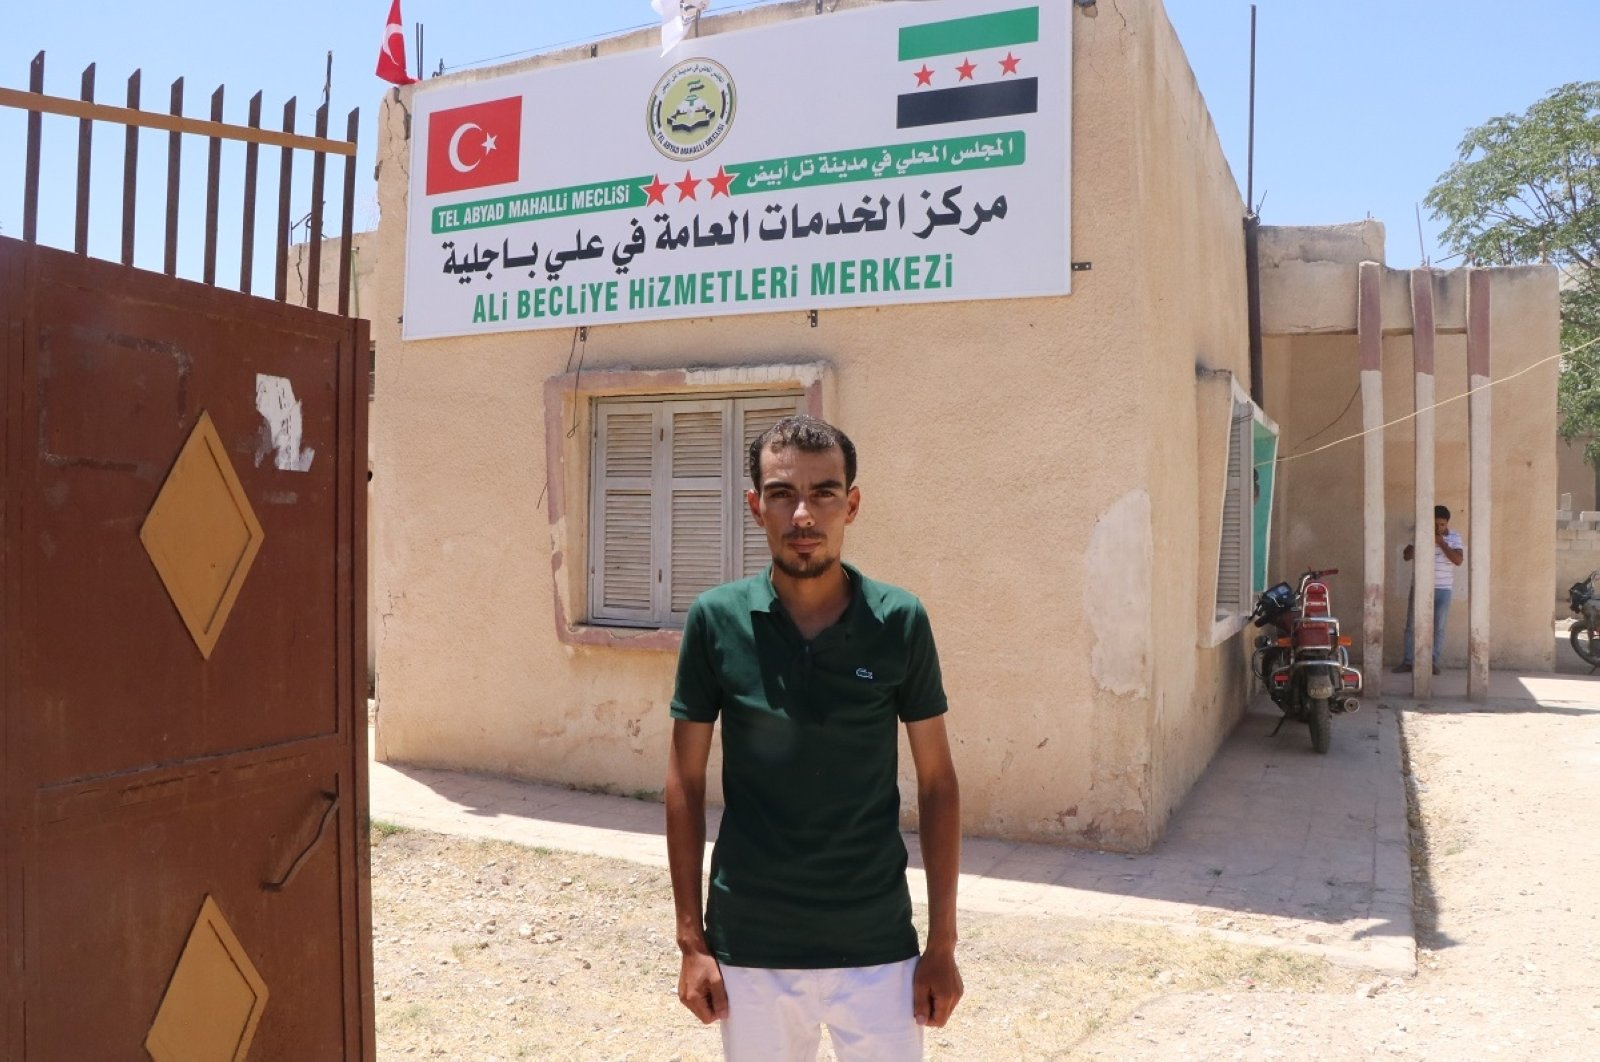 Turkey is providing public services to towns and villages in Syria's northern Tal Abyad district, July 22, 2020. (AA Photo)